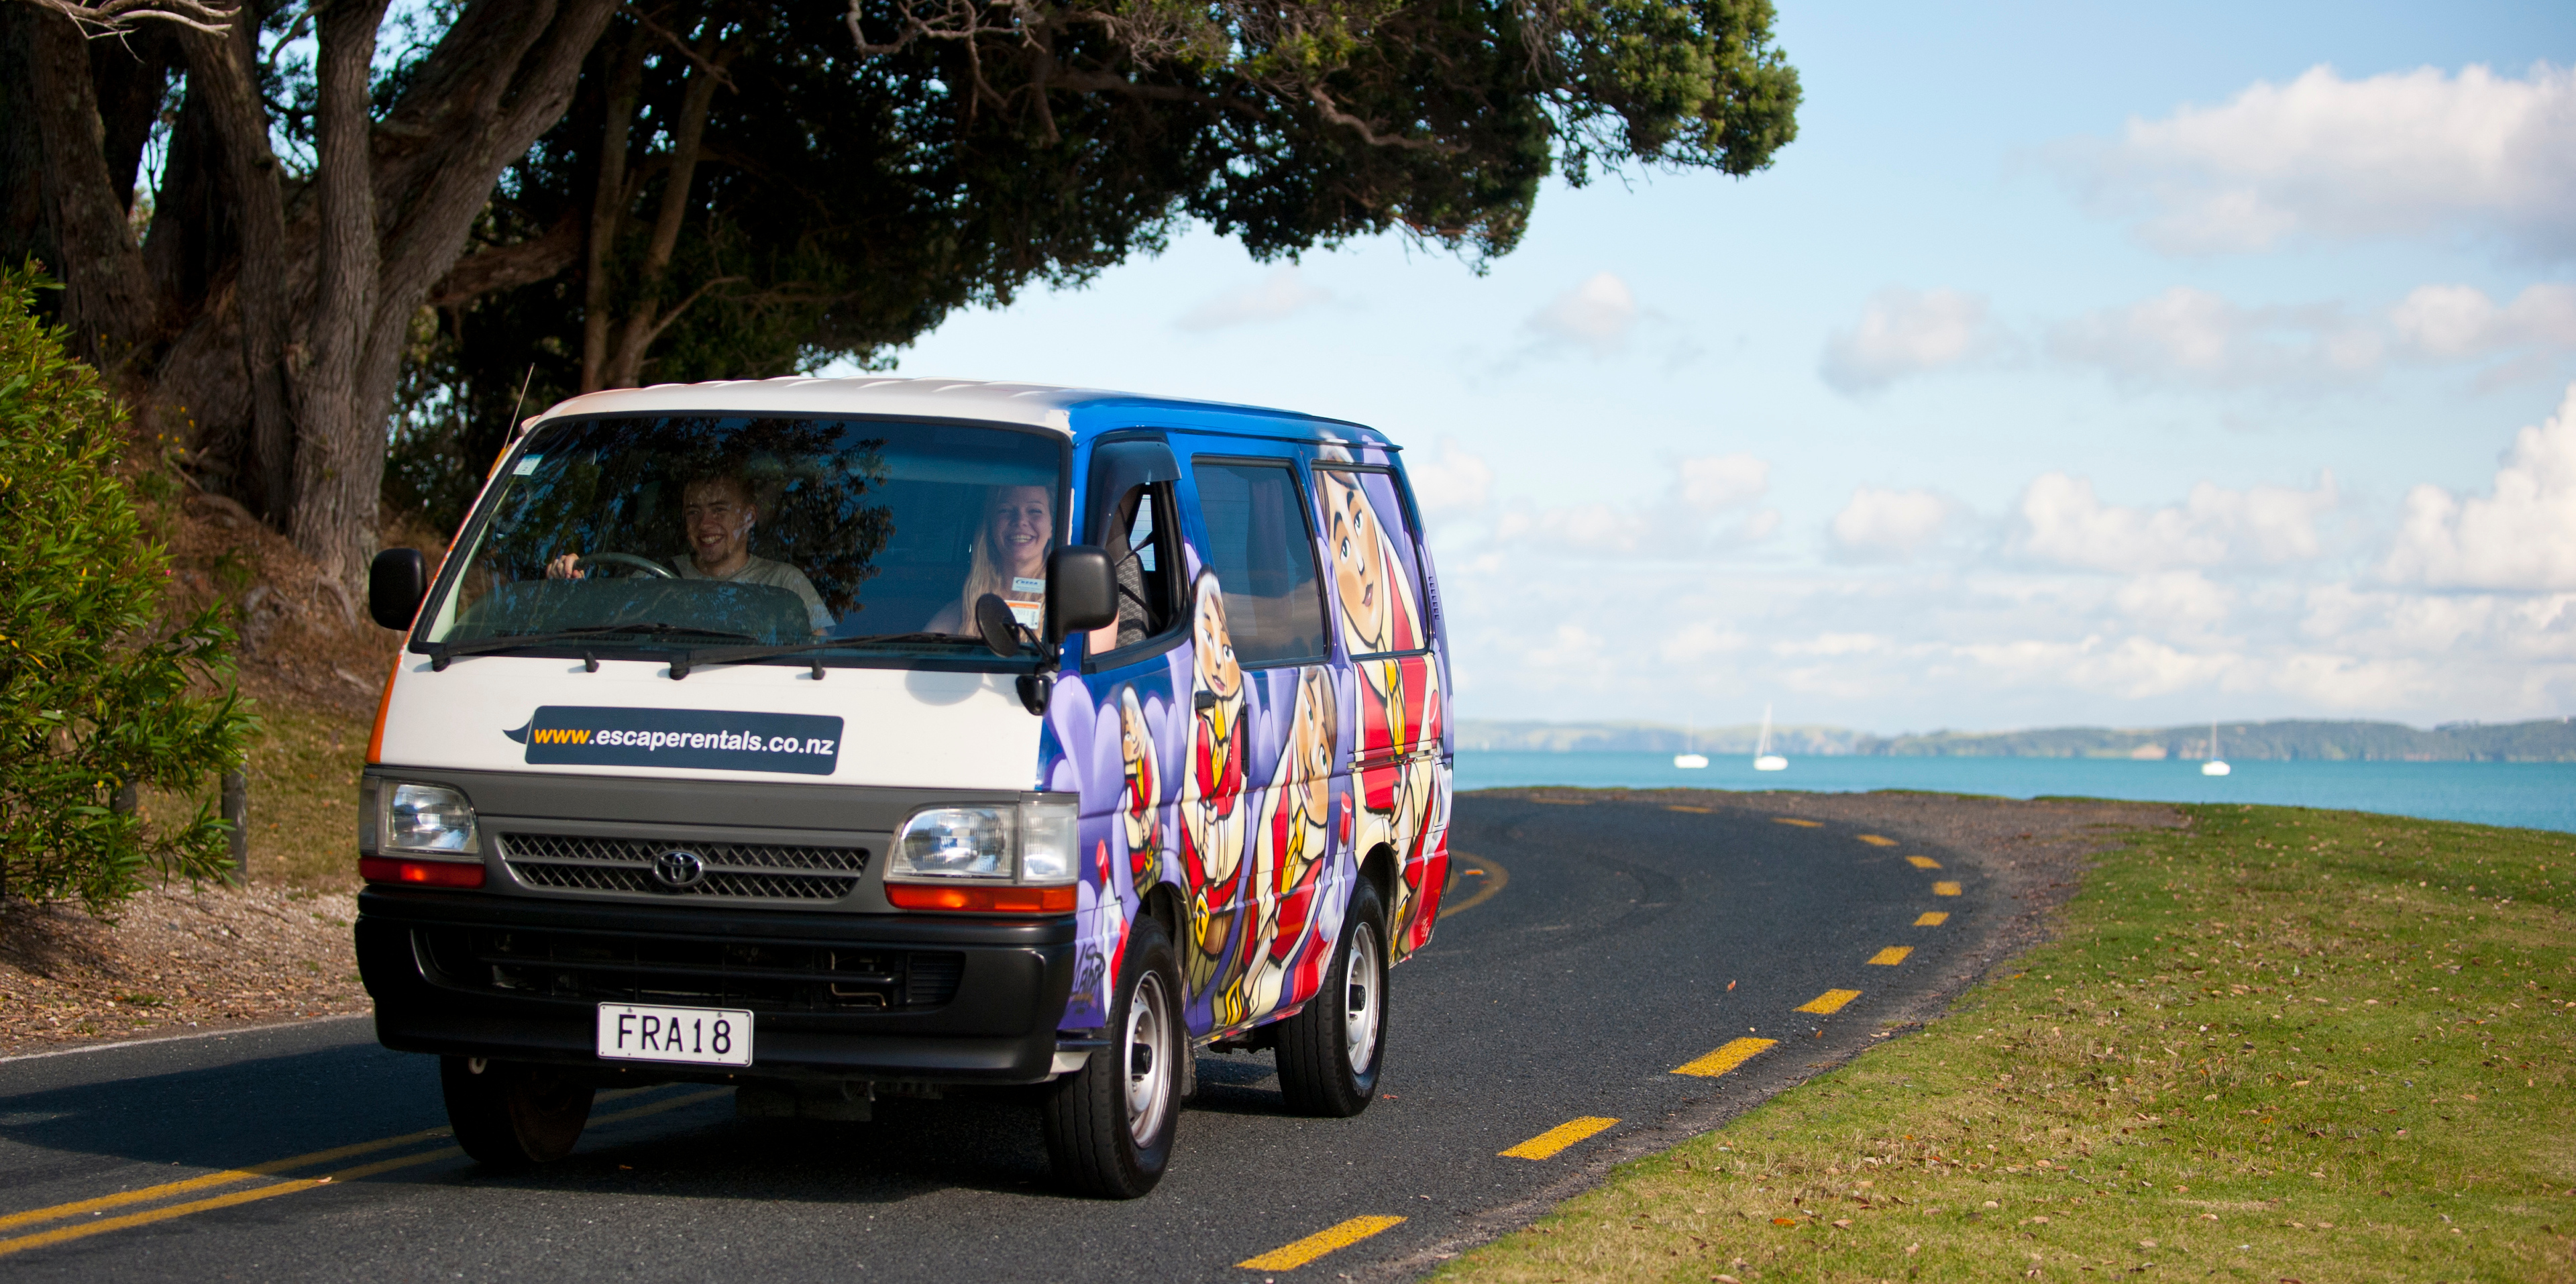 Escape Rentals New Zealand Certified Self-Contained Escape Campervan